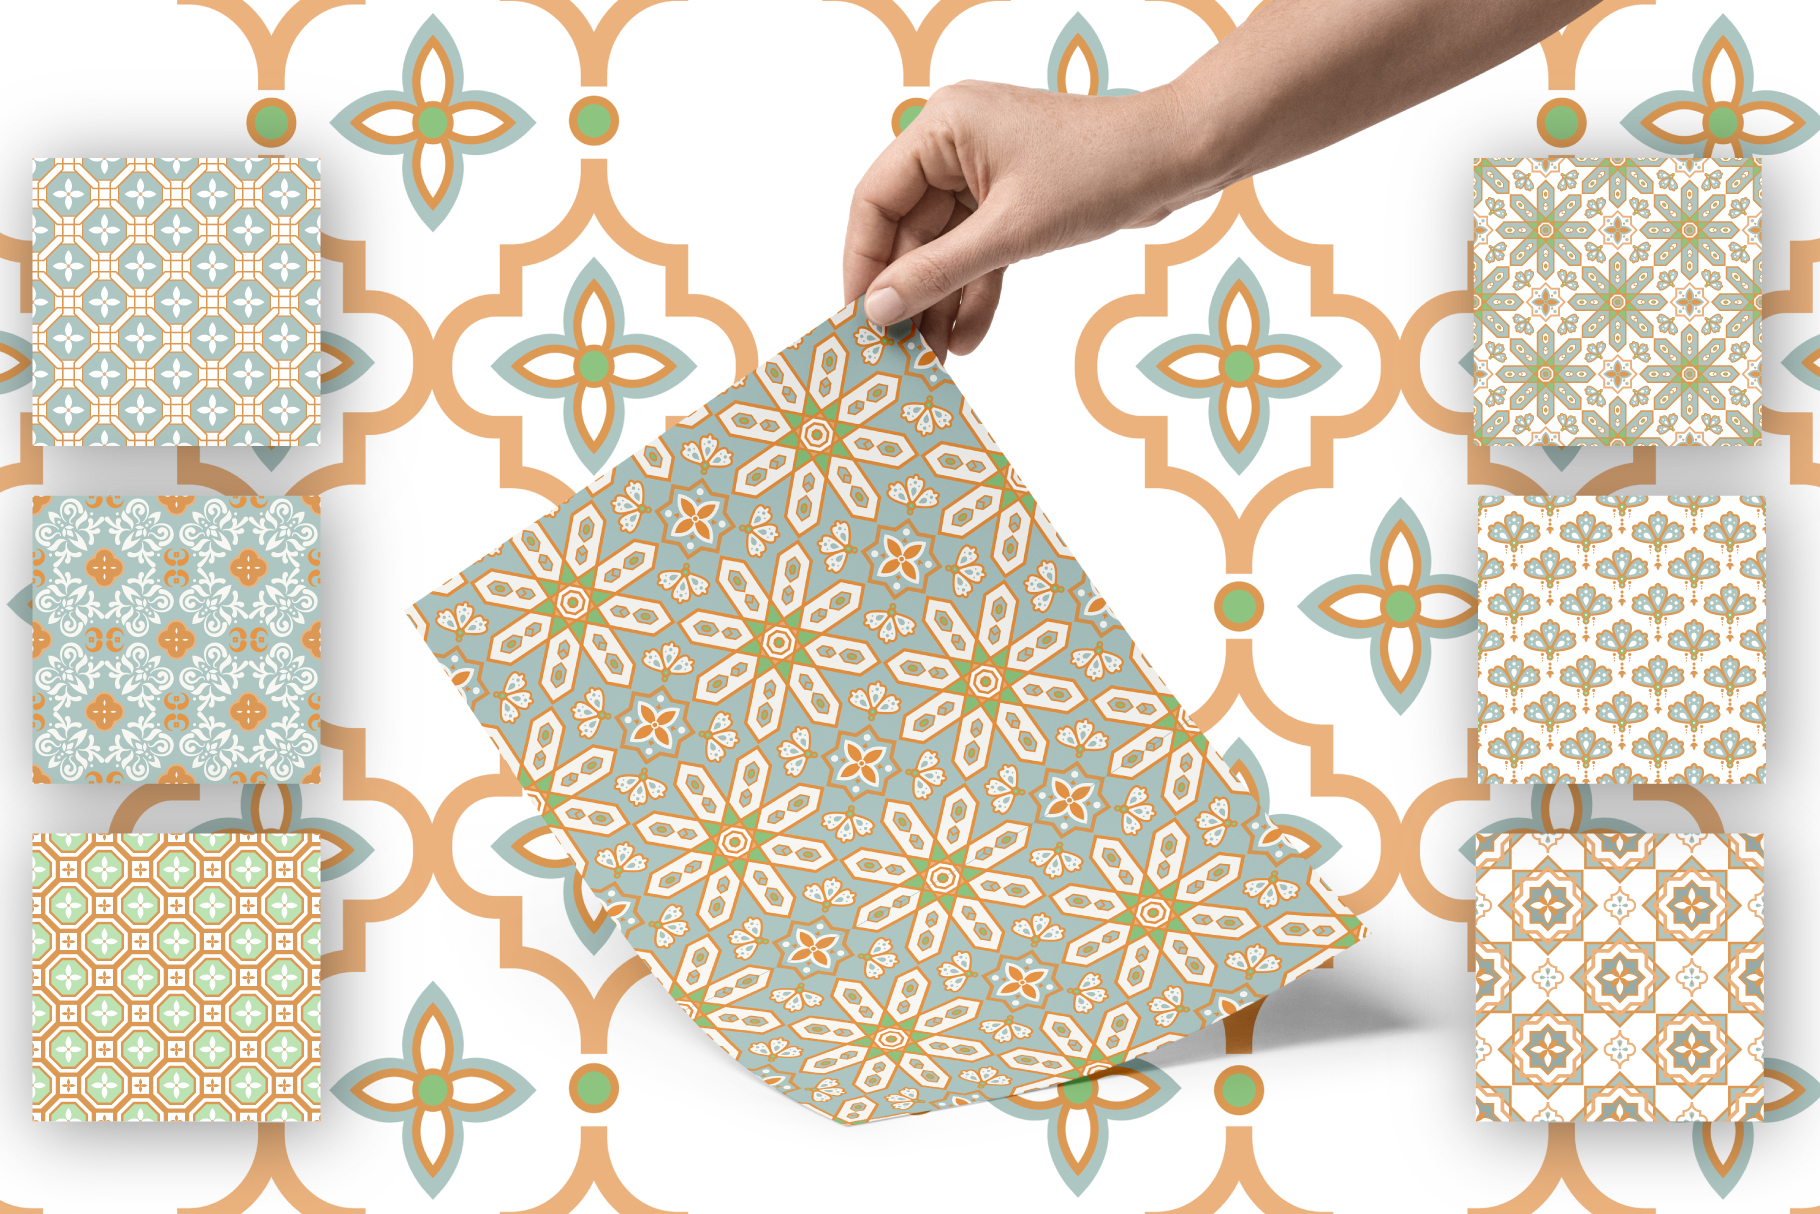 Moroccan Tiles - 20 patterns example image 6